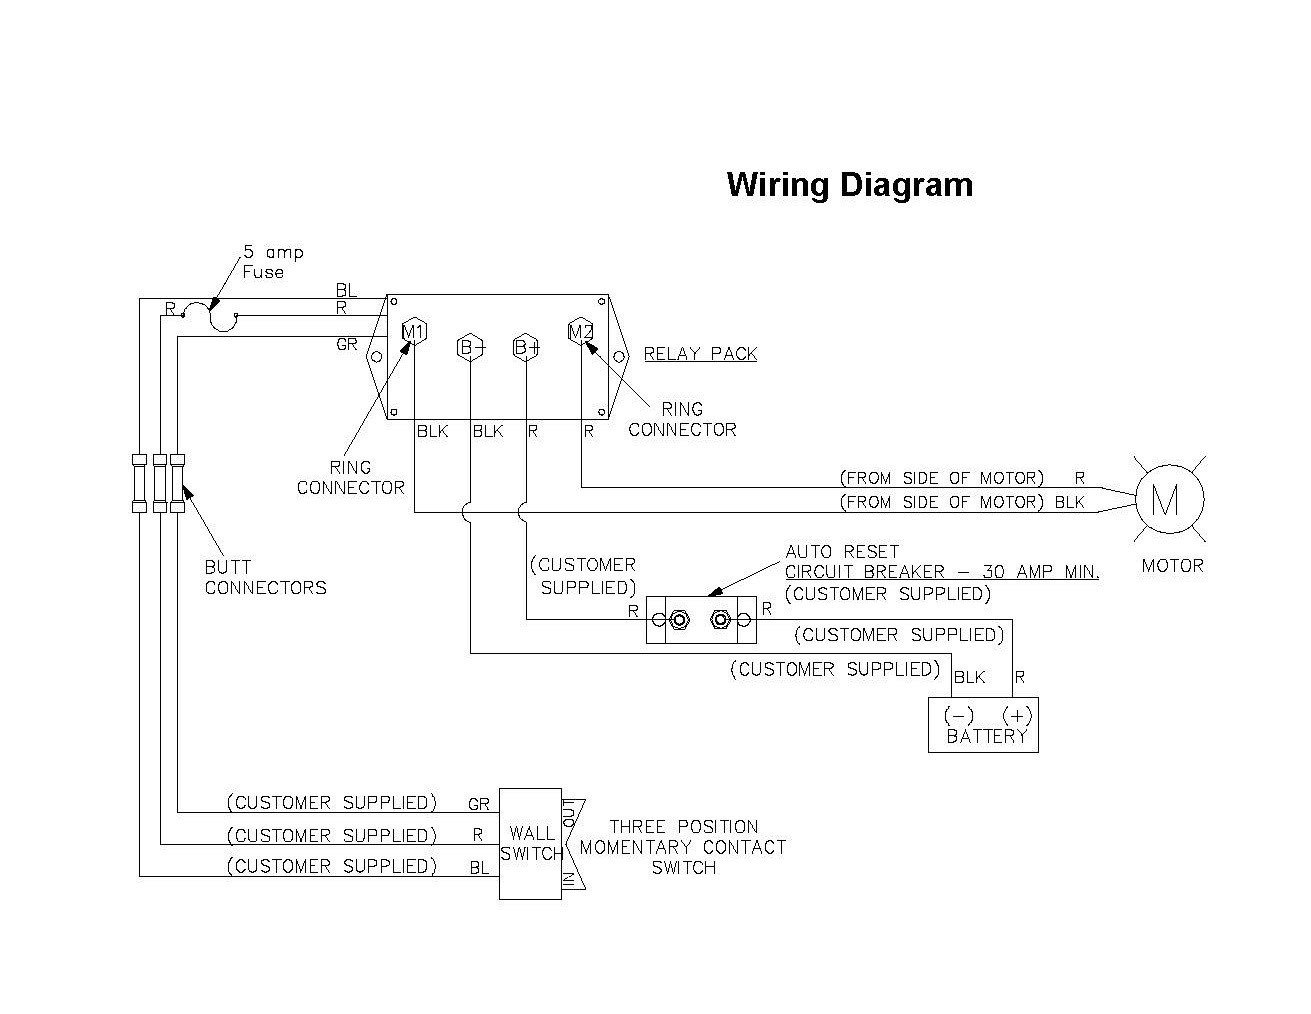 Forest River 5Th Wheel Wiring Diagram | Wiring Diagram - Forest River Wiring Diagram